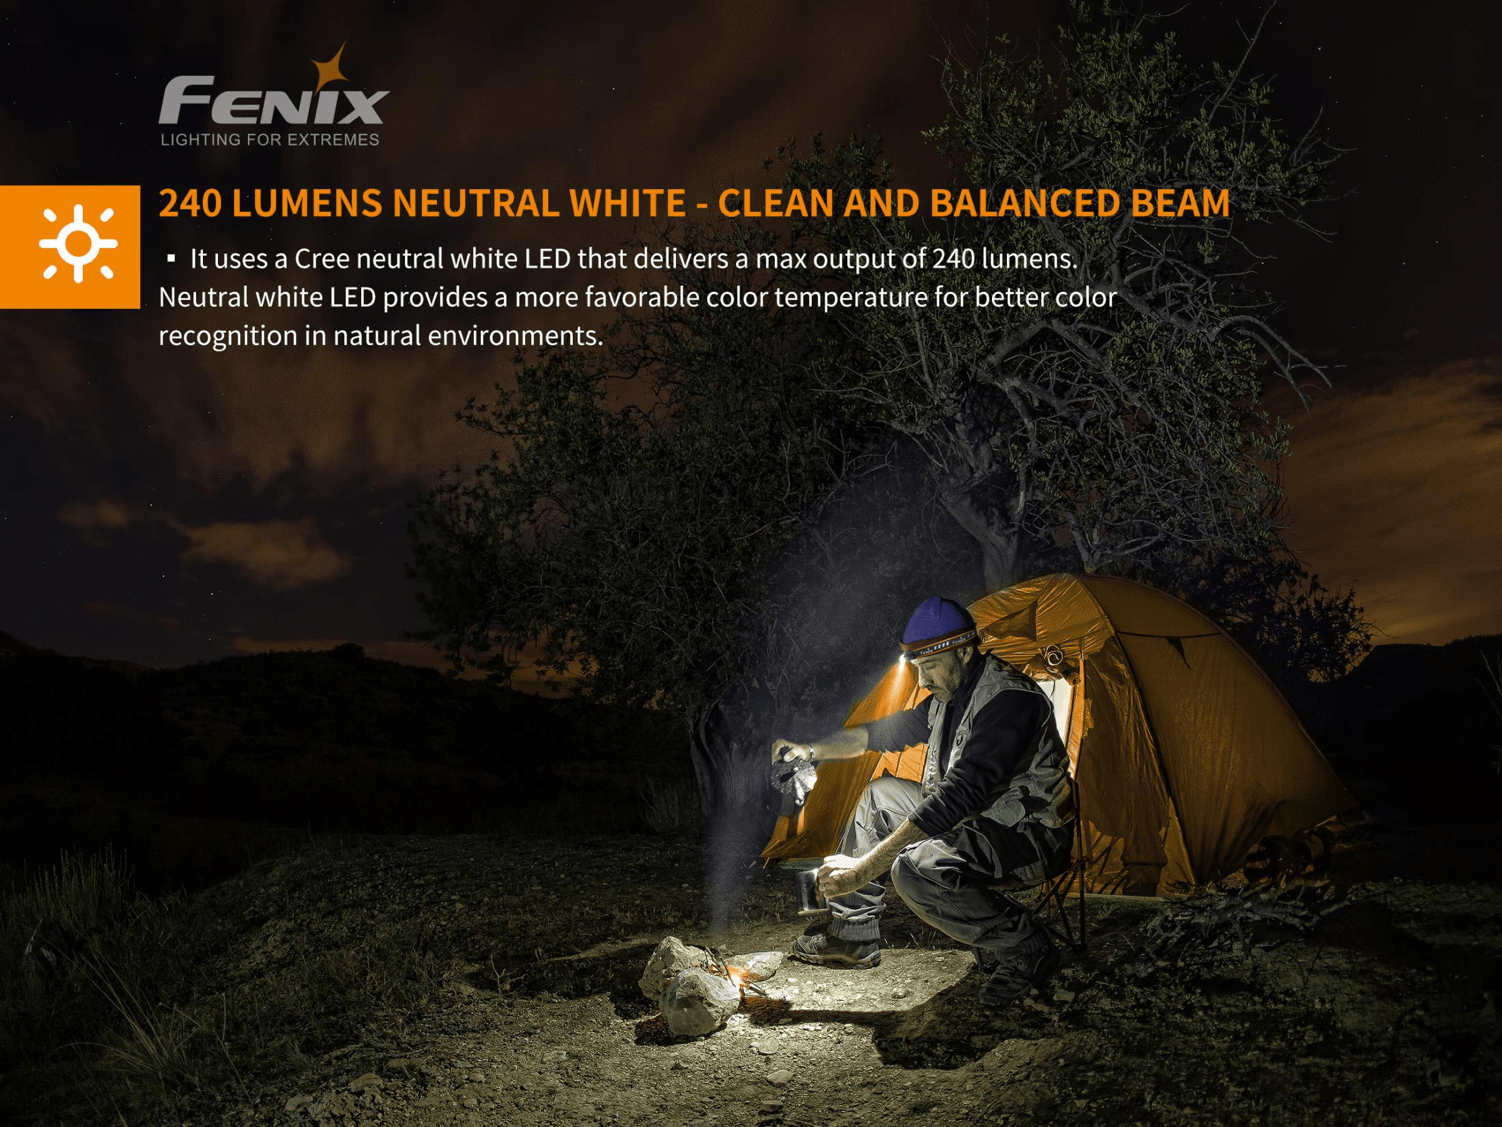 Fenix HM23 LED Headlamp in India for Outdoors, Running, Hiking, 240 Lumens Neutral White LED, Compact & Light weight Head Torch